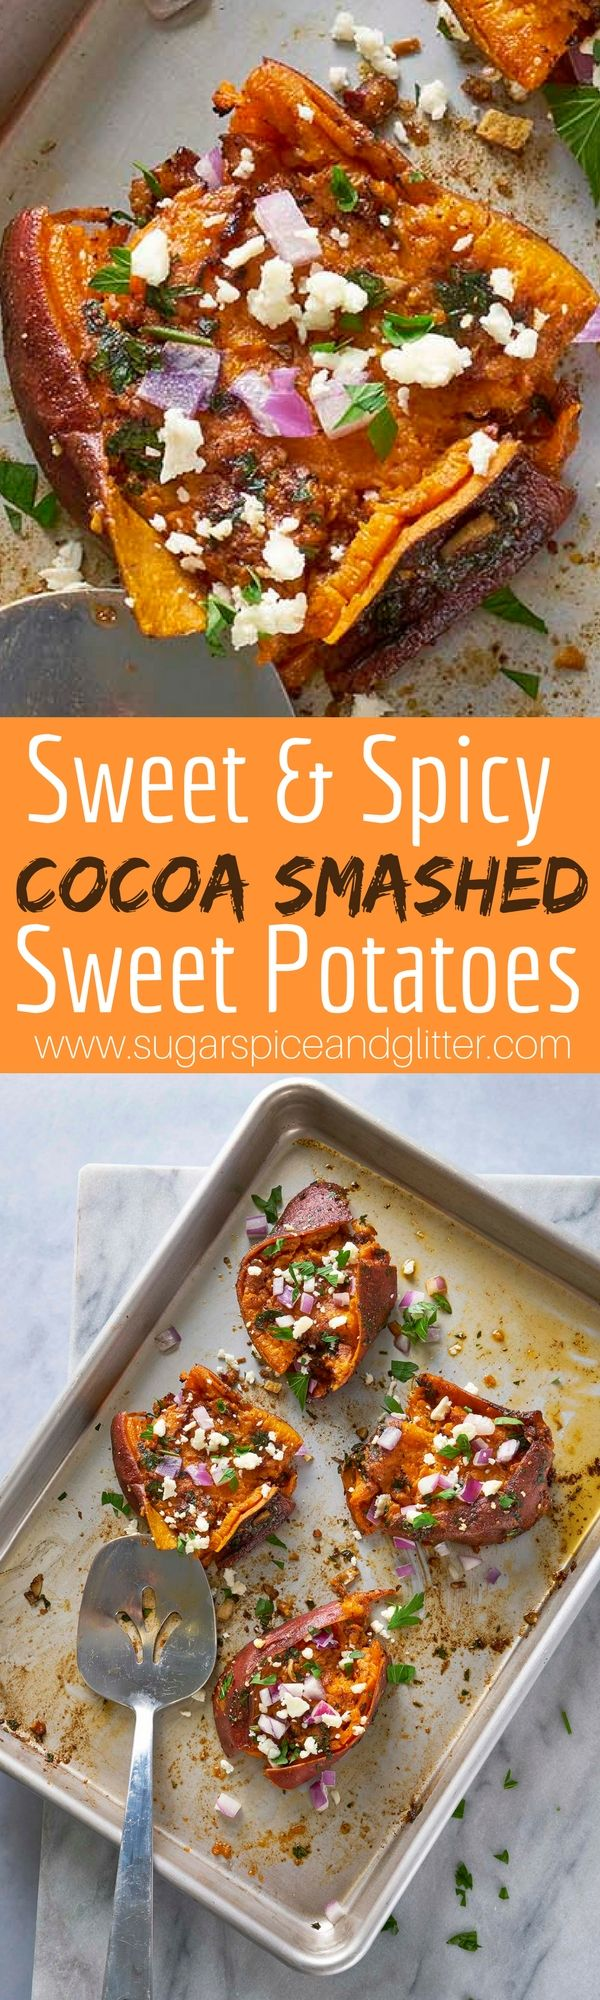 This Sweet and Spicy Smashed Sweet Potato Recipe has an unexpected flavor in the mix- chocolate! A savoury chocolate recipe inspired by the Chocolate Emporium at Universal Studios Florida